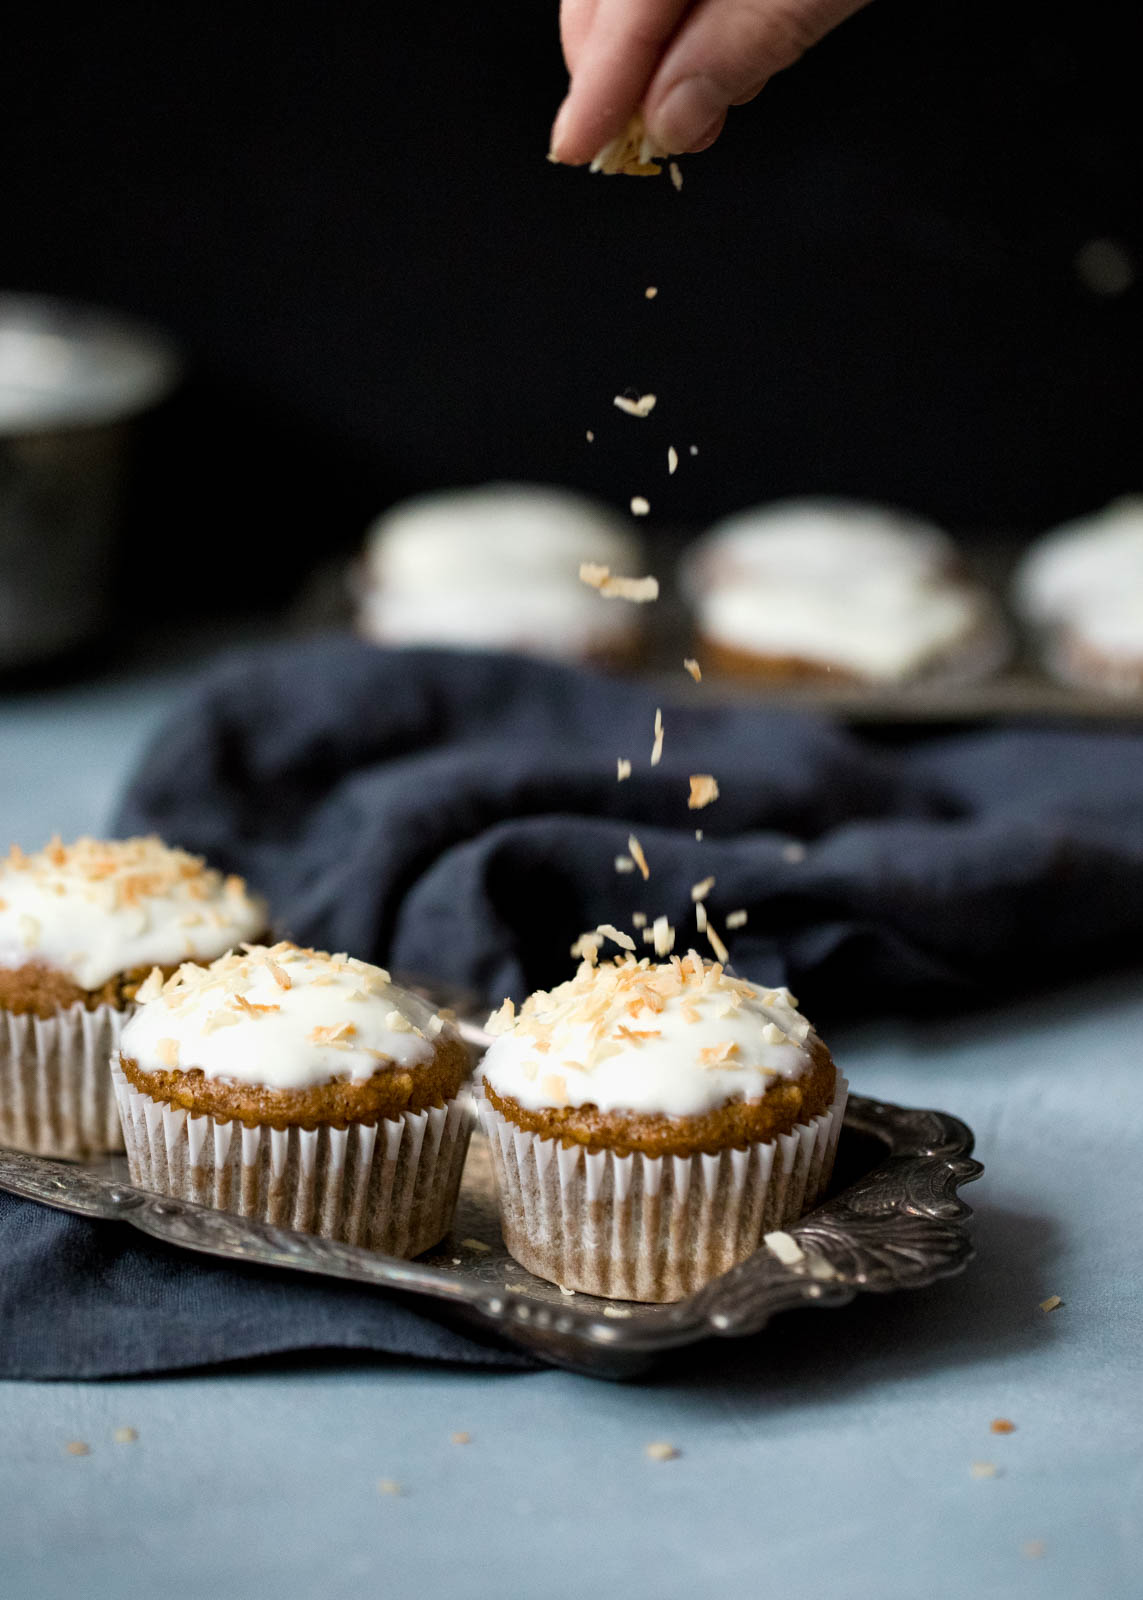 Healthy carrot cake muffins for breakfast thanks to this nutritious recipe packed with whole grains and healthy fats.